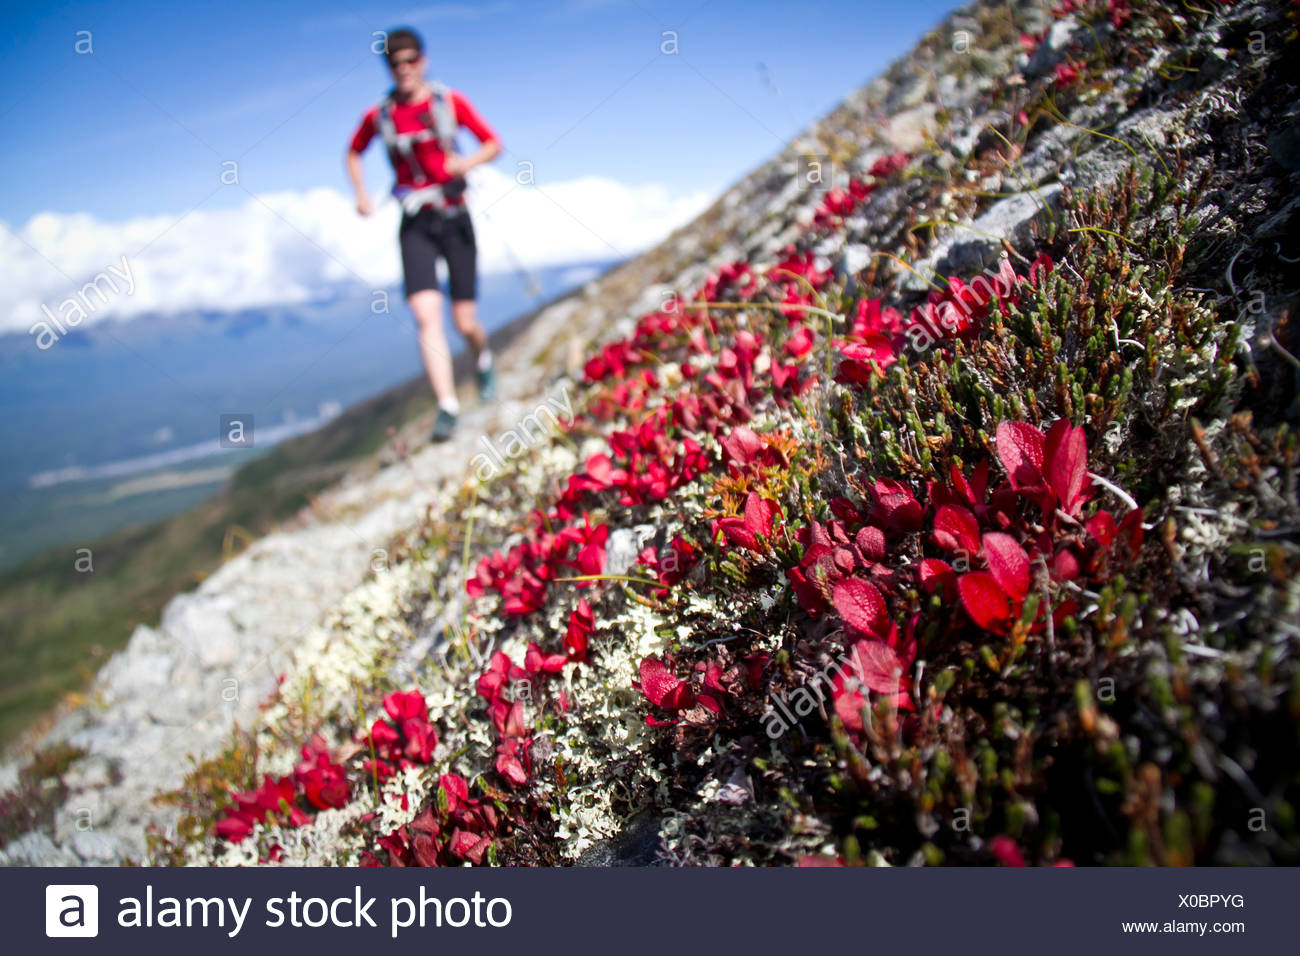 Trail Running femme entre Lazy Mountain and Matanuska, crête des montagnes Chugach, Southcentral Alaska, automne Photo Stock